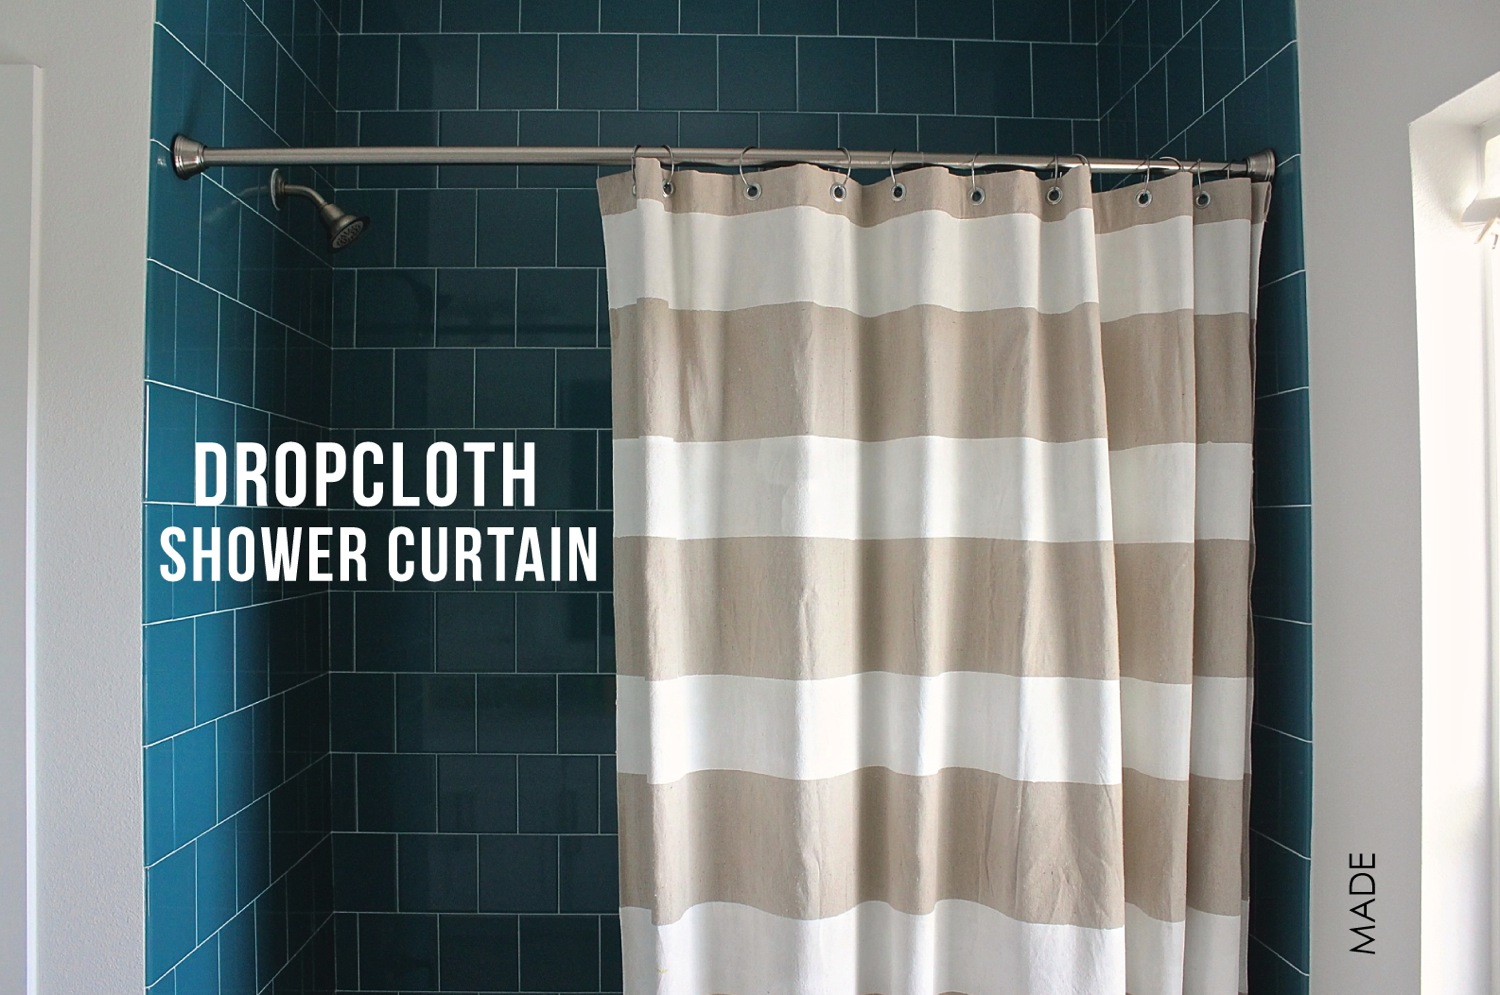 Shower Curtains: Dropcloth Shower Curtain